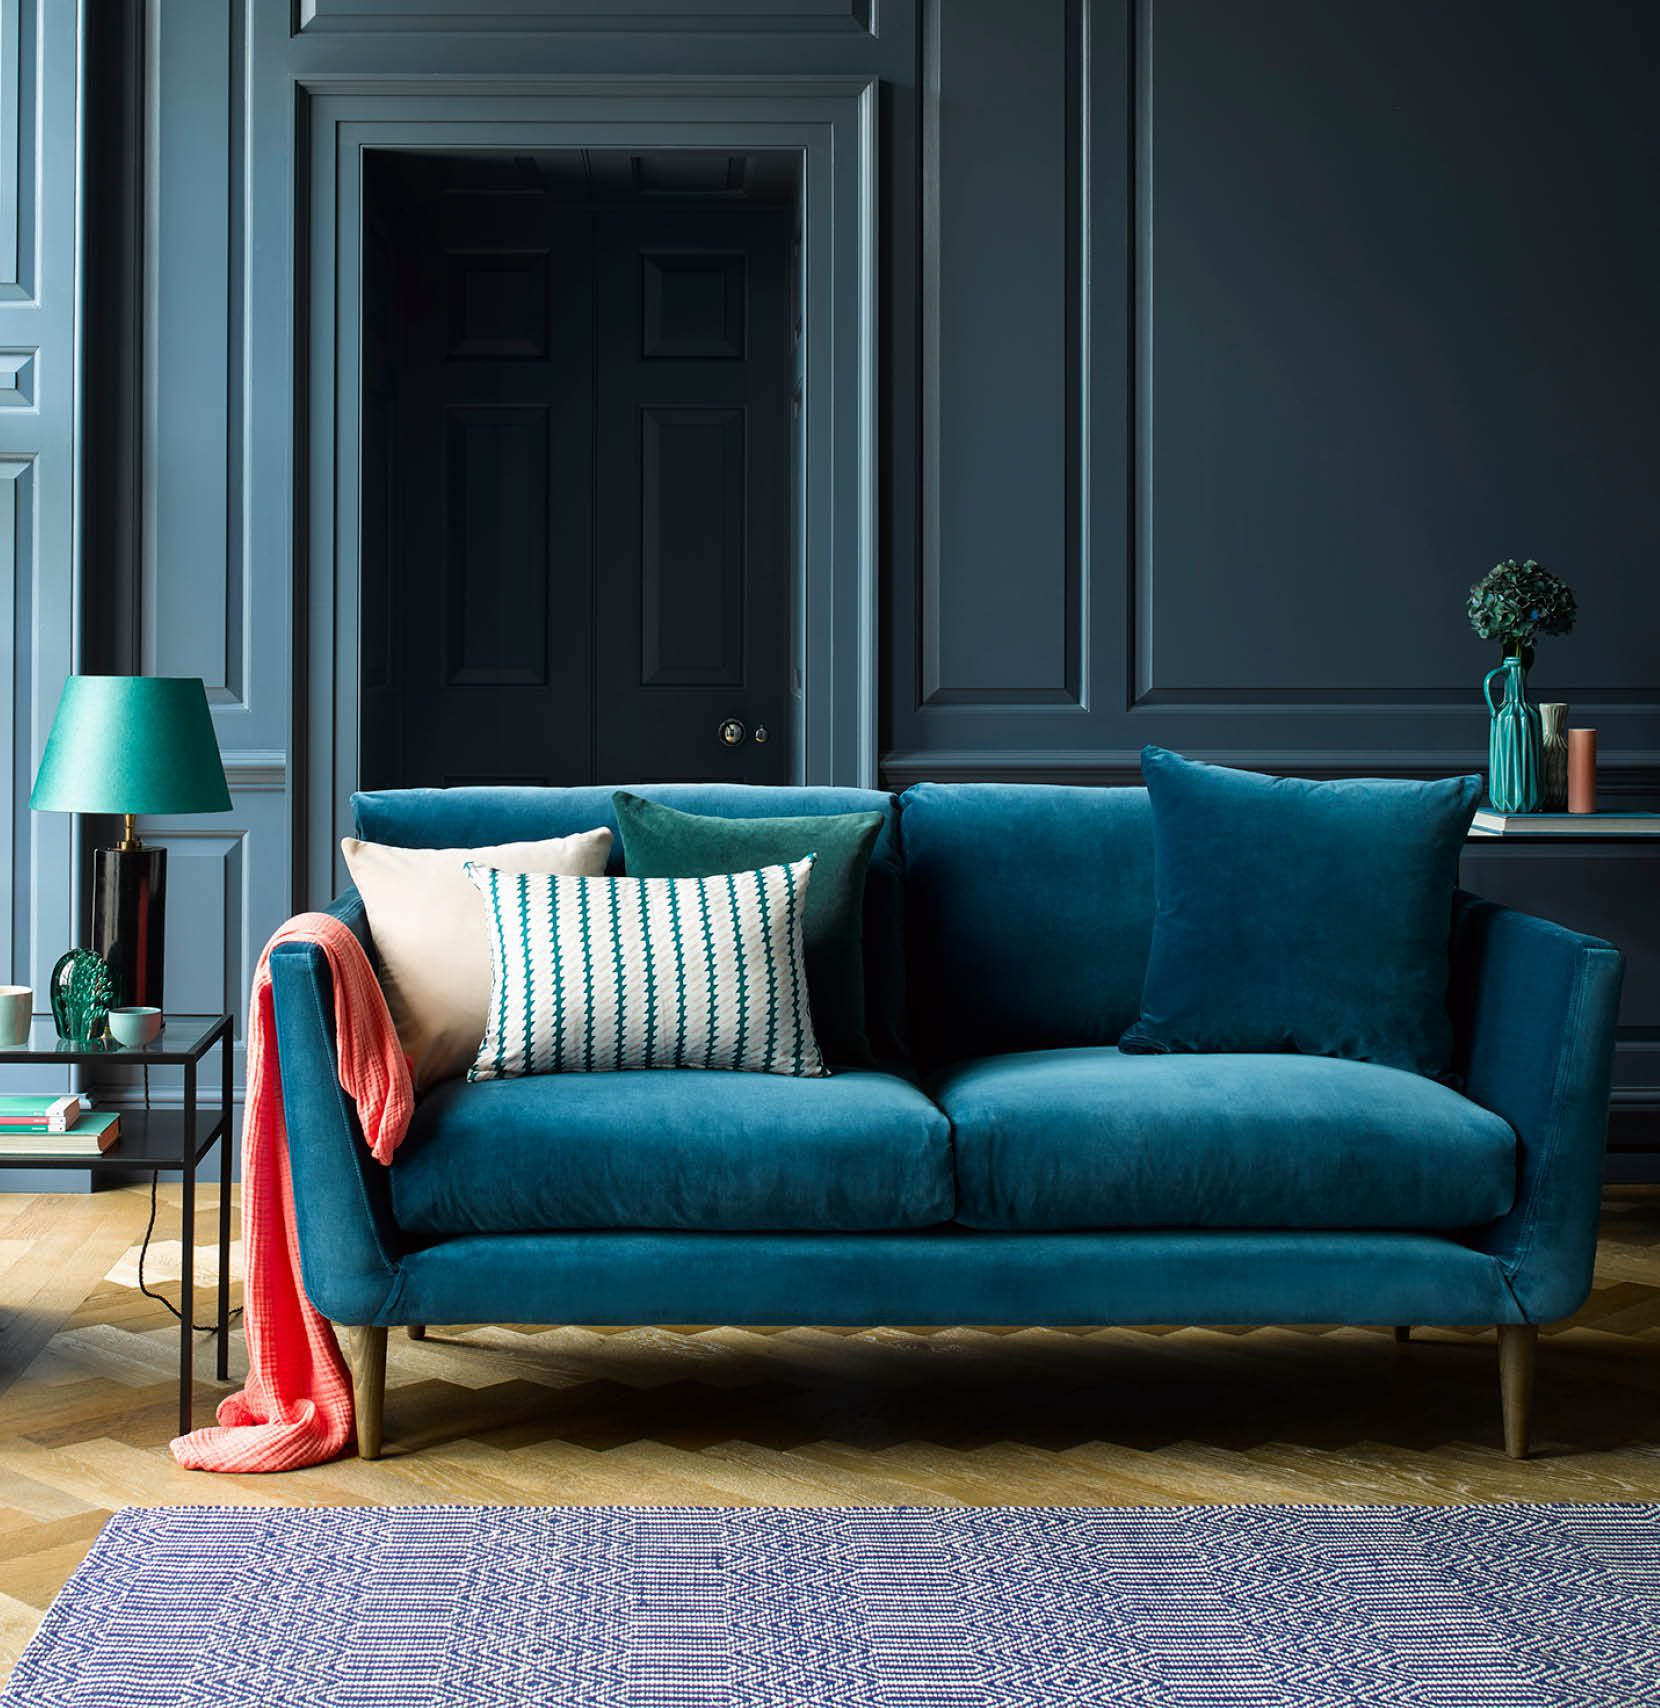 Holly velvet sofa in Deep Turquoise styled in contemporary living room